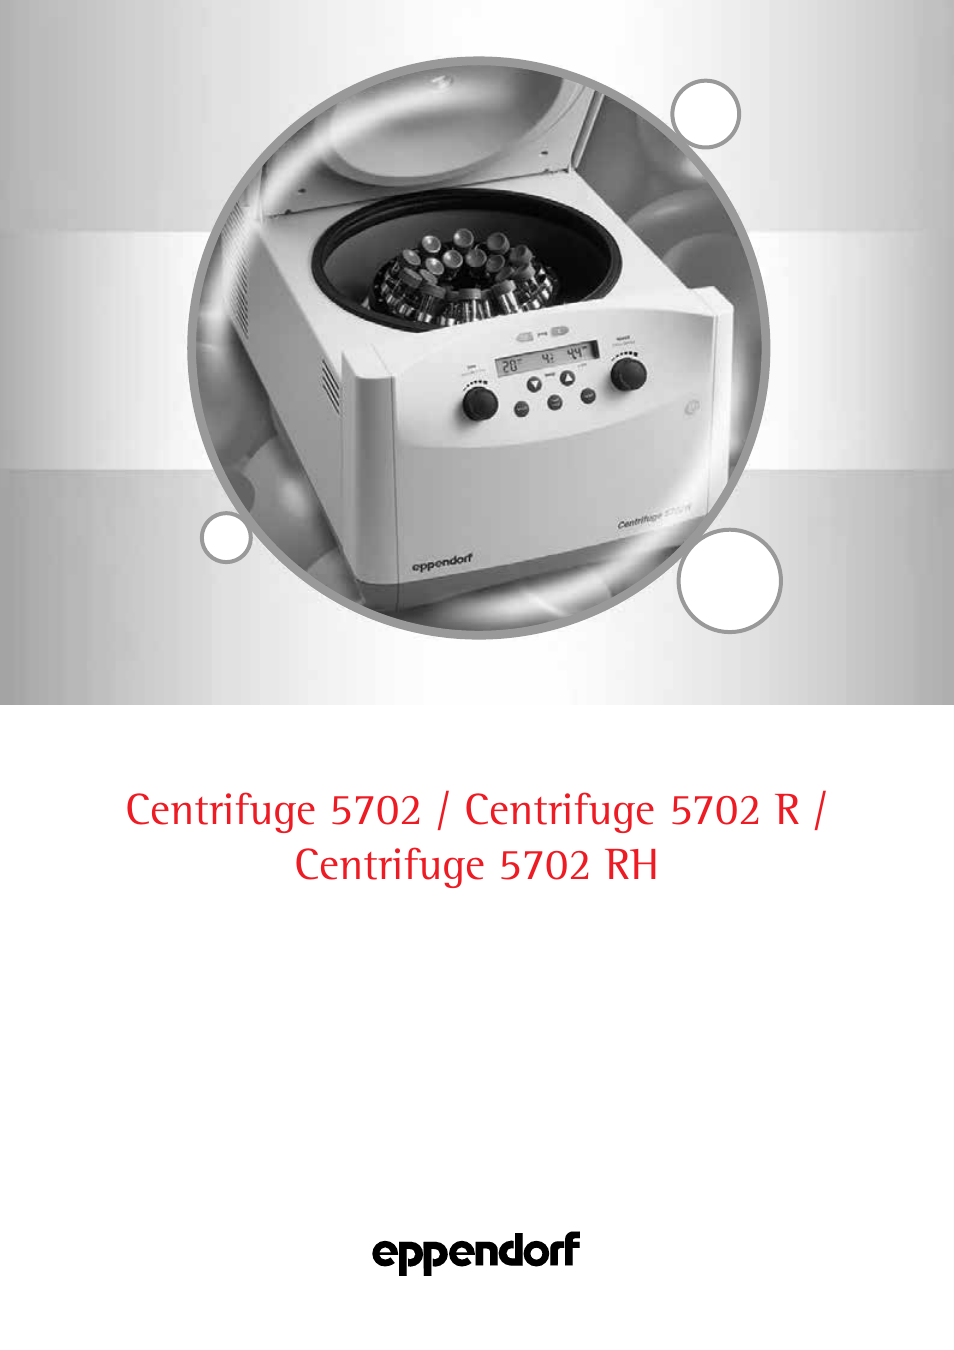 eppendorf 5702 rh centrifuge user manual 27 pages also for 5702 rh manualsdir com 5702 Eppendorf 5415D eppendorf centrifuge 5702 service manual pdf